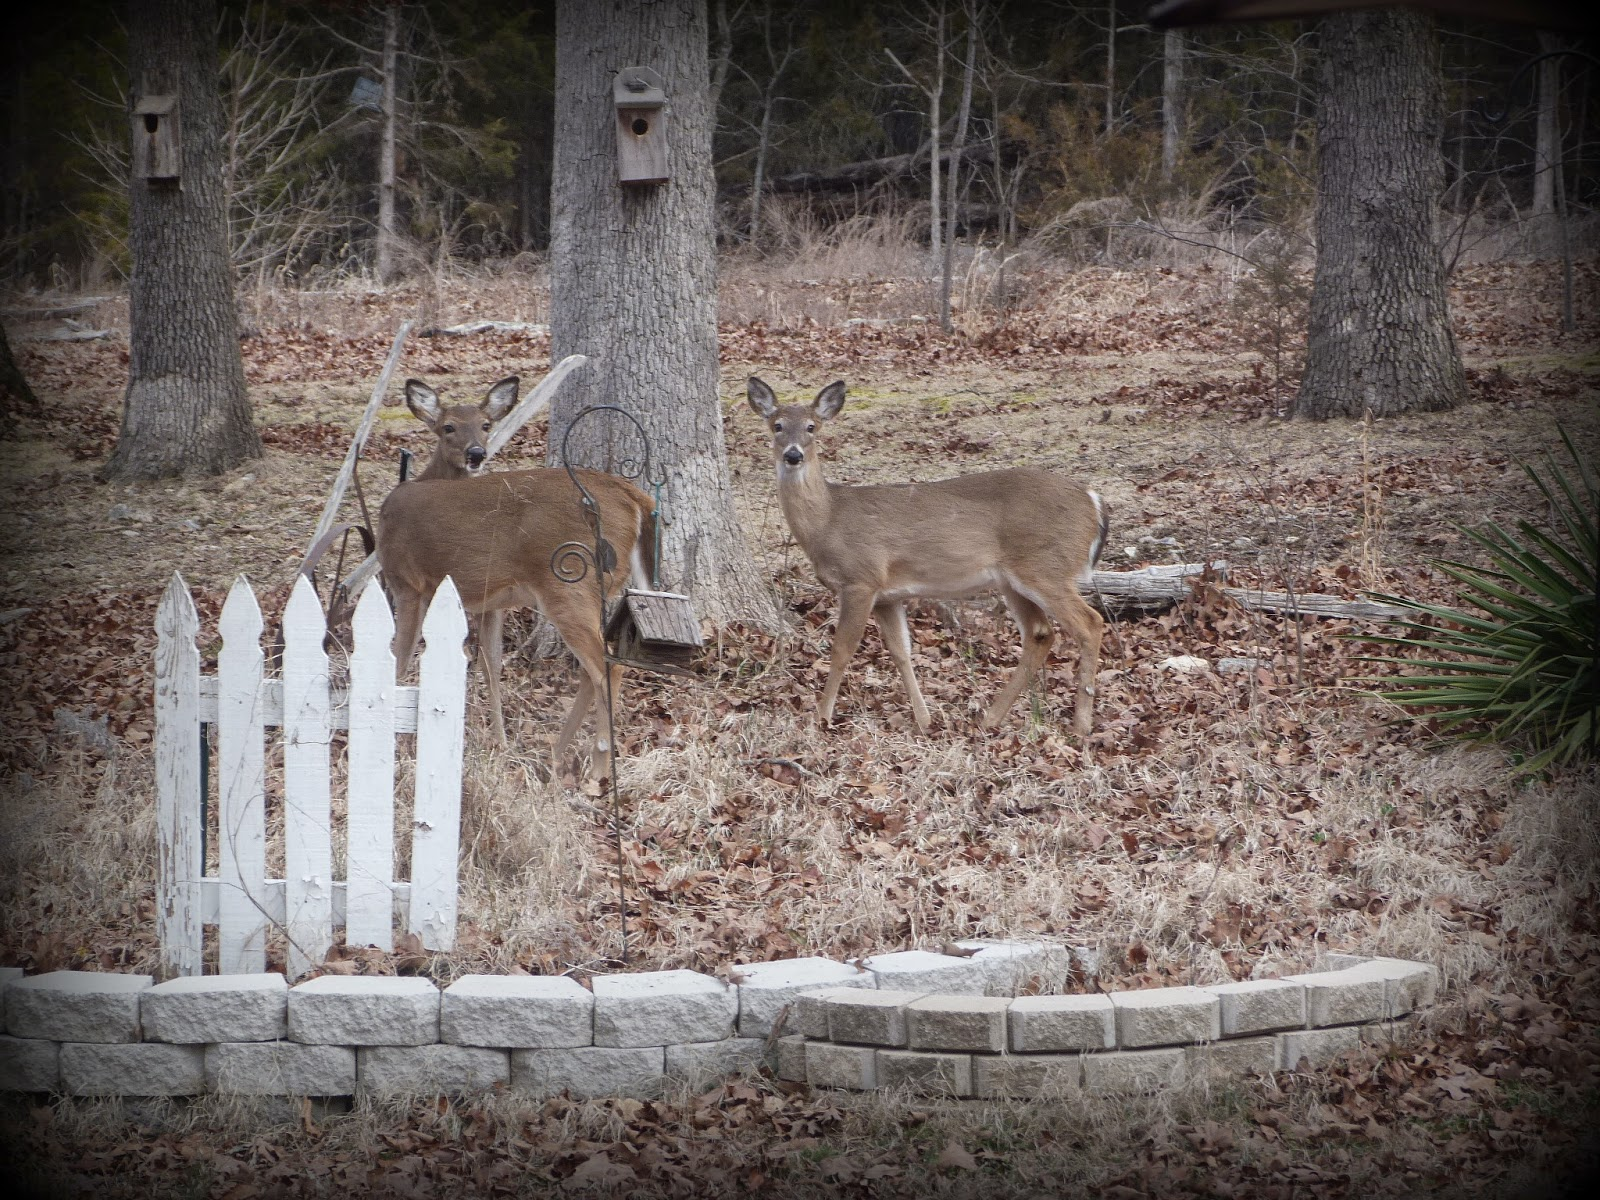 CHMusings: Deer in the garden